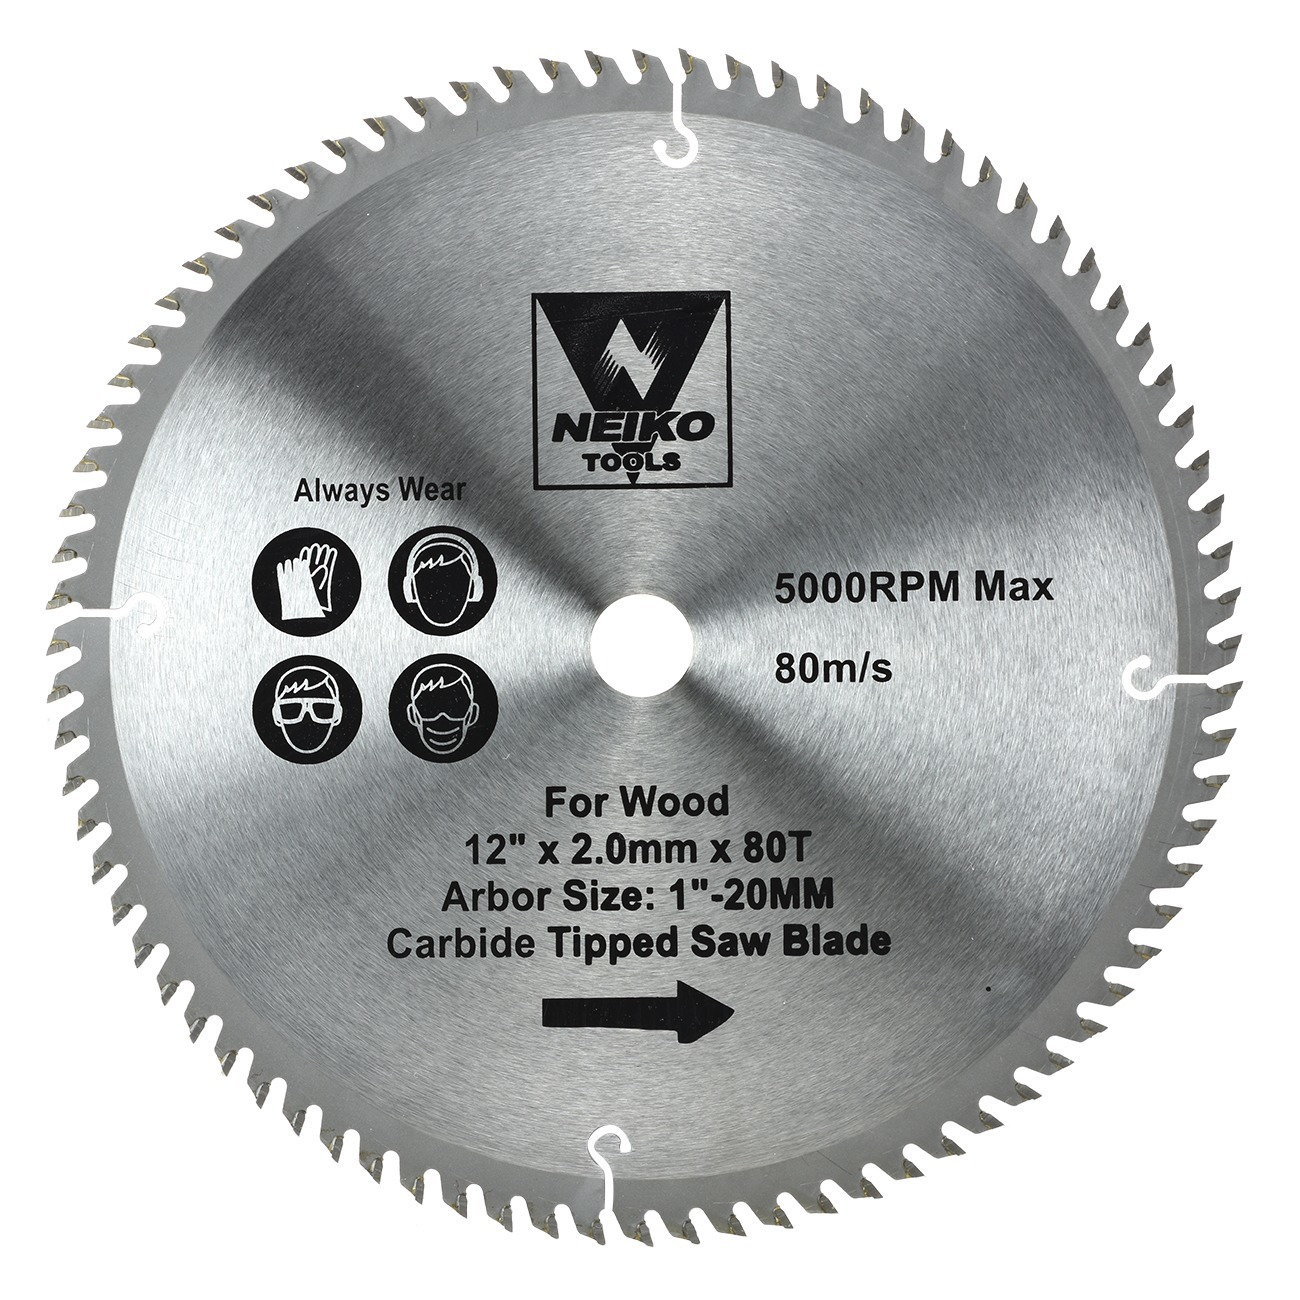 Neiko 10768A 12-Inch Carbide Tipped Miter Saw Blade | 80 Tooth by Neiko